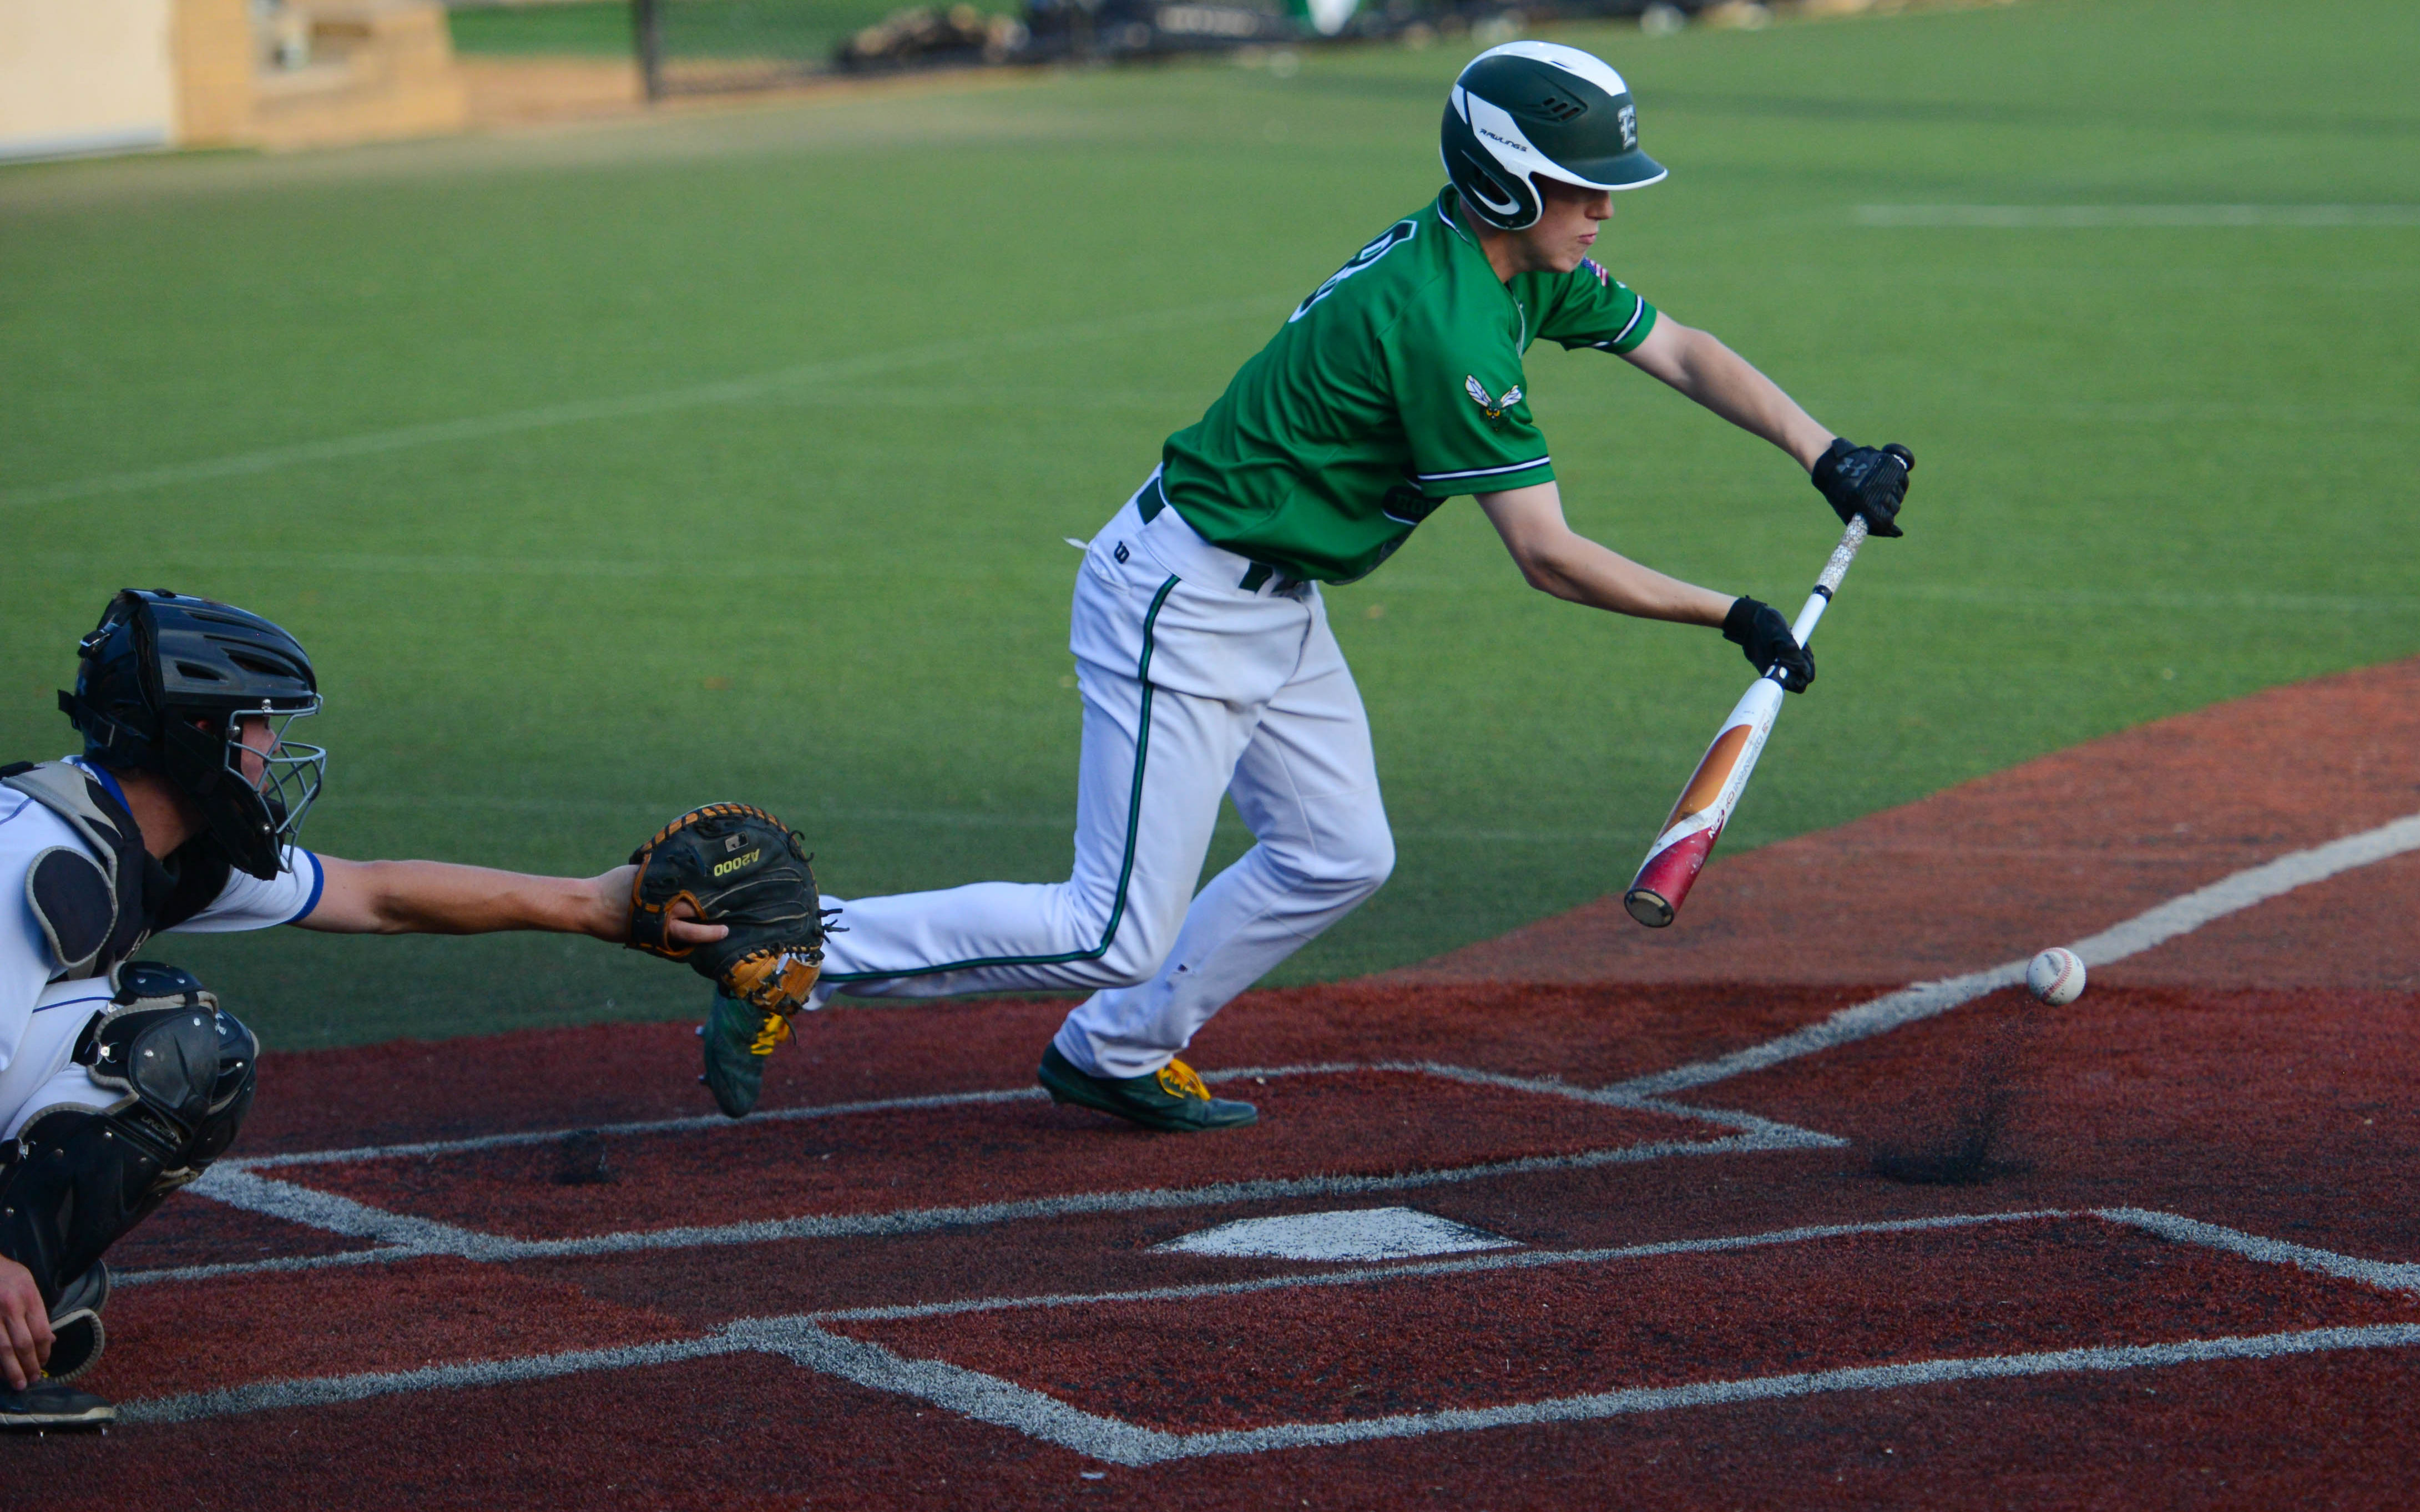 Edina's Andrew Enck lays down a bunt against the Skippers at Minnetonka High School Wednesday night. Photo by Carter Jones, SportsEngine